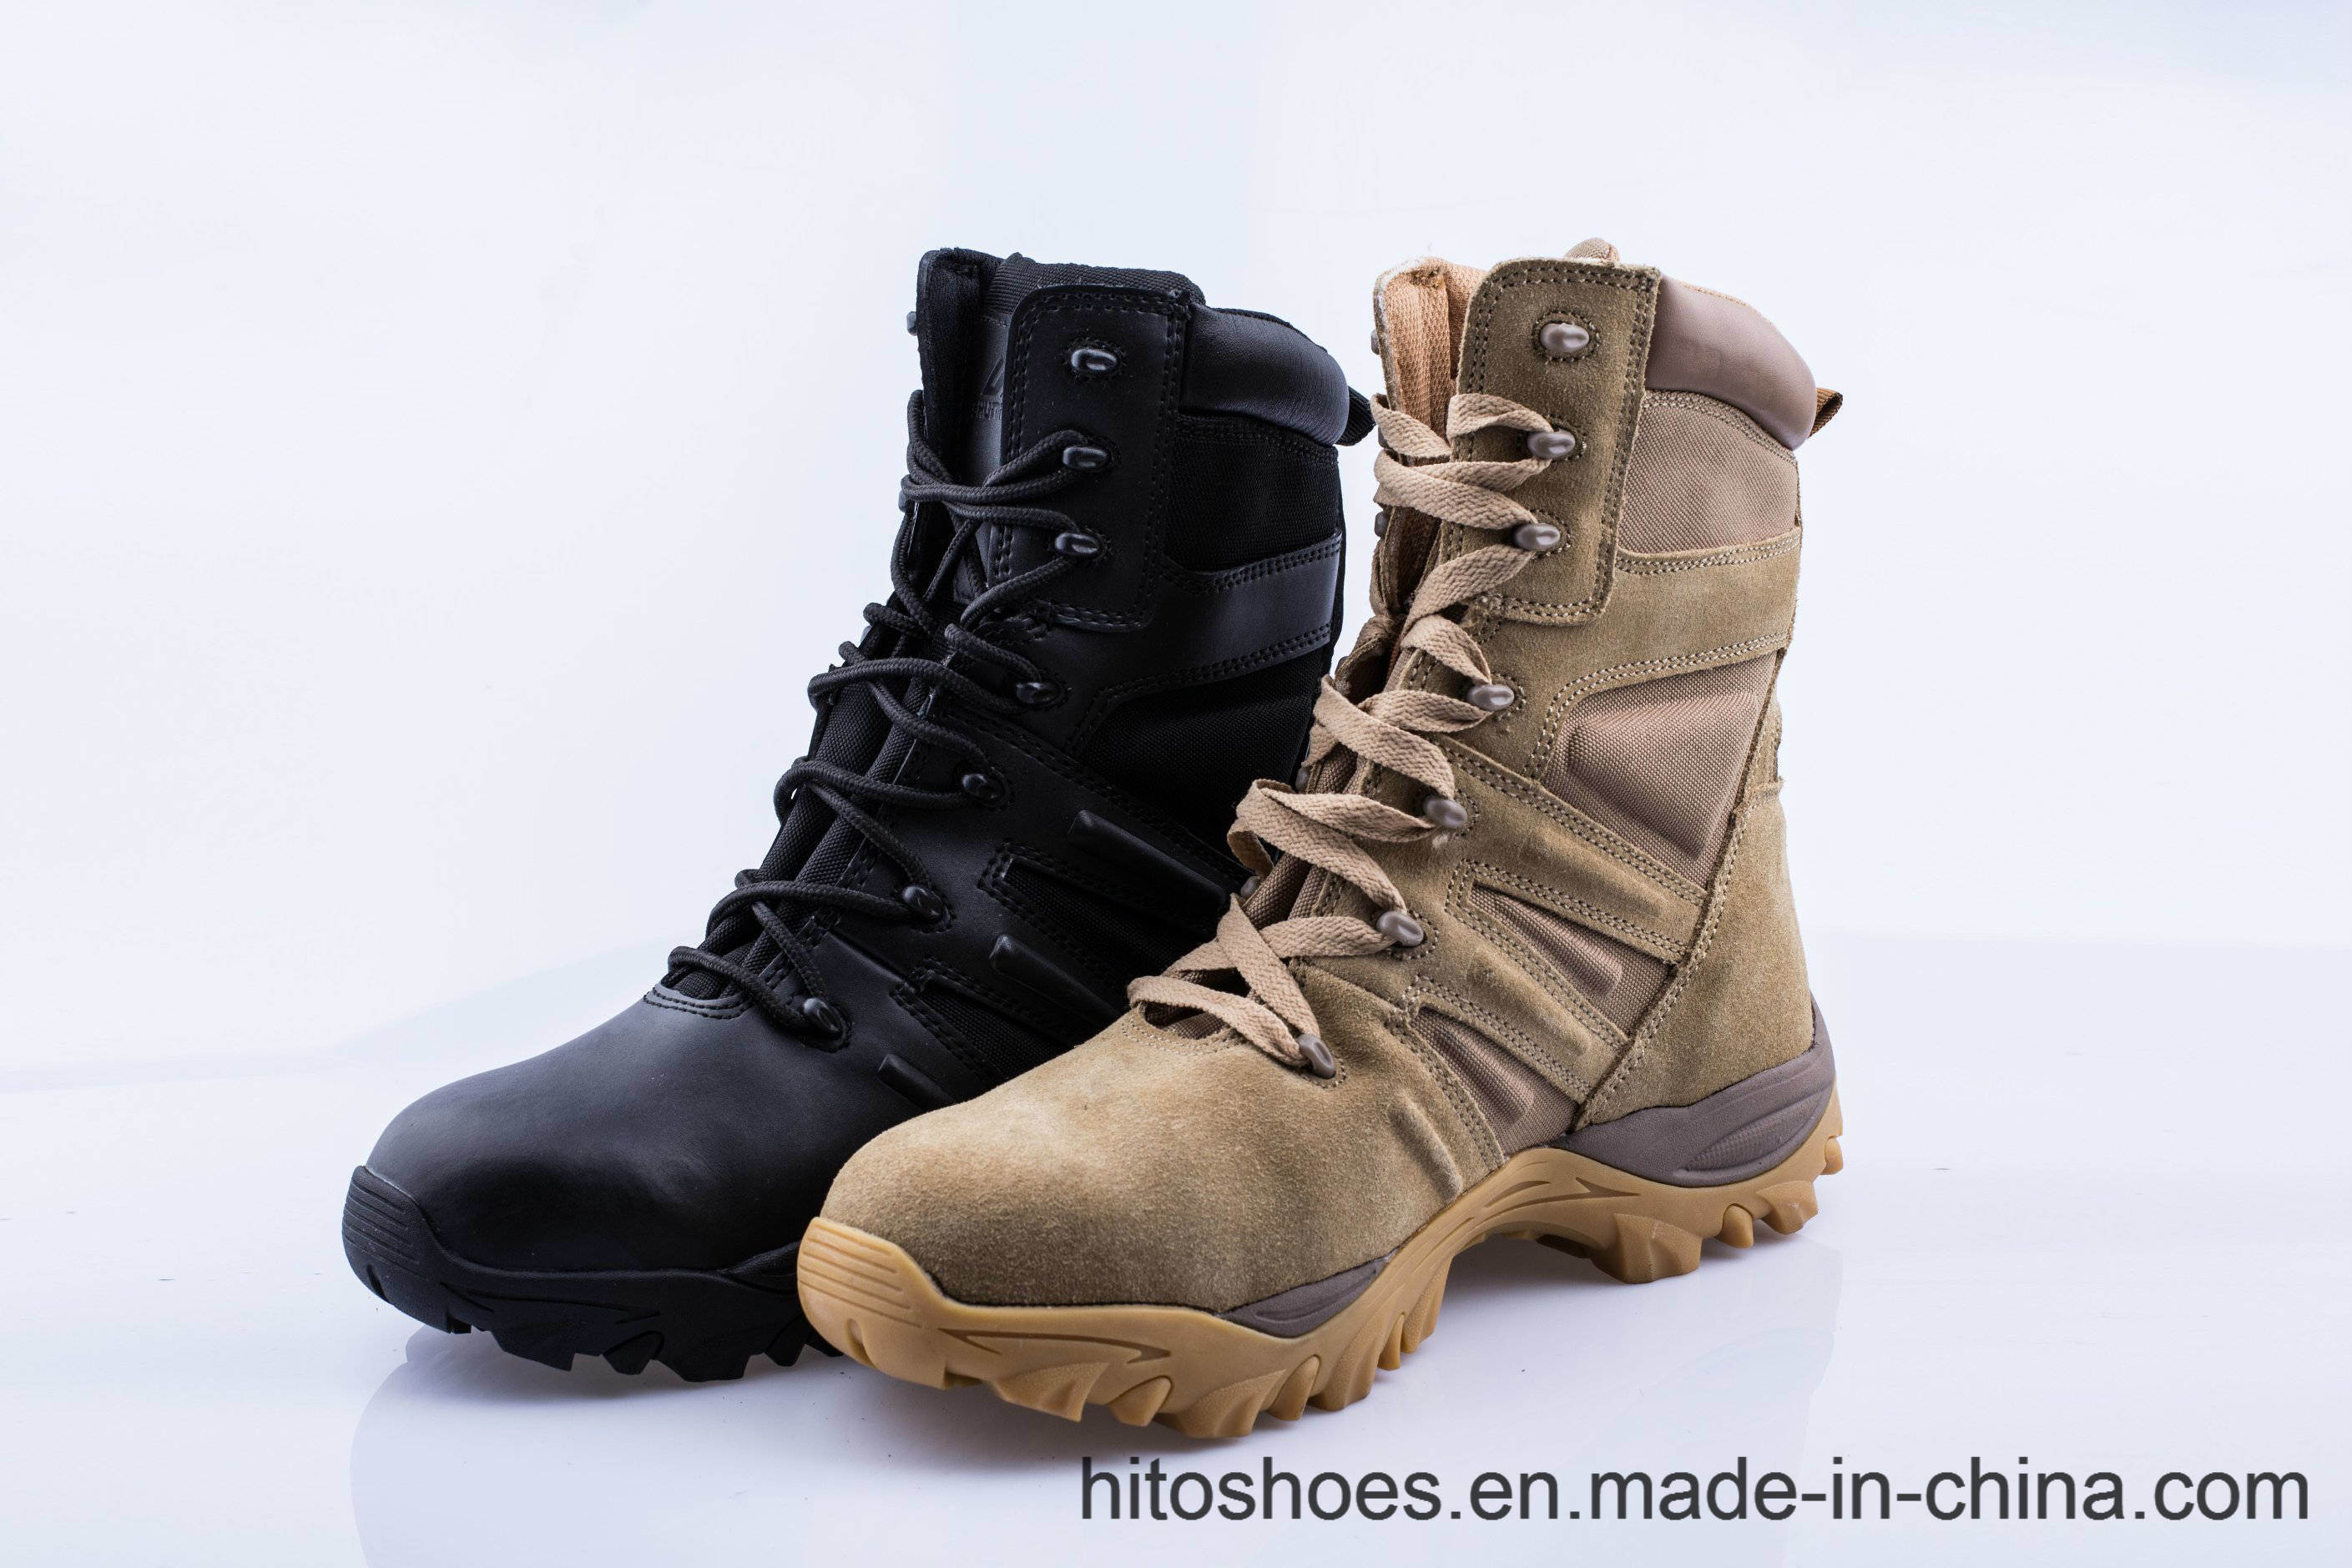 ea58e861e62168 China Breathable Desert Hiking Boots Army Military Boots Tactical Combat  Boots - China Safety Shoes, Work Shoes